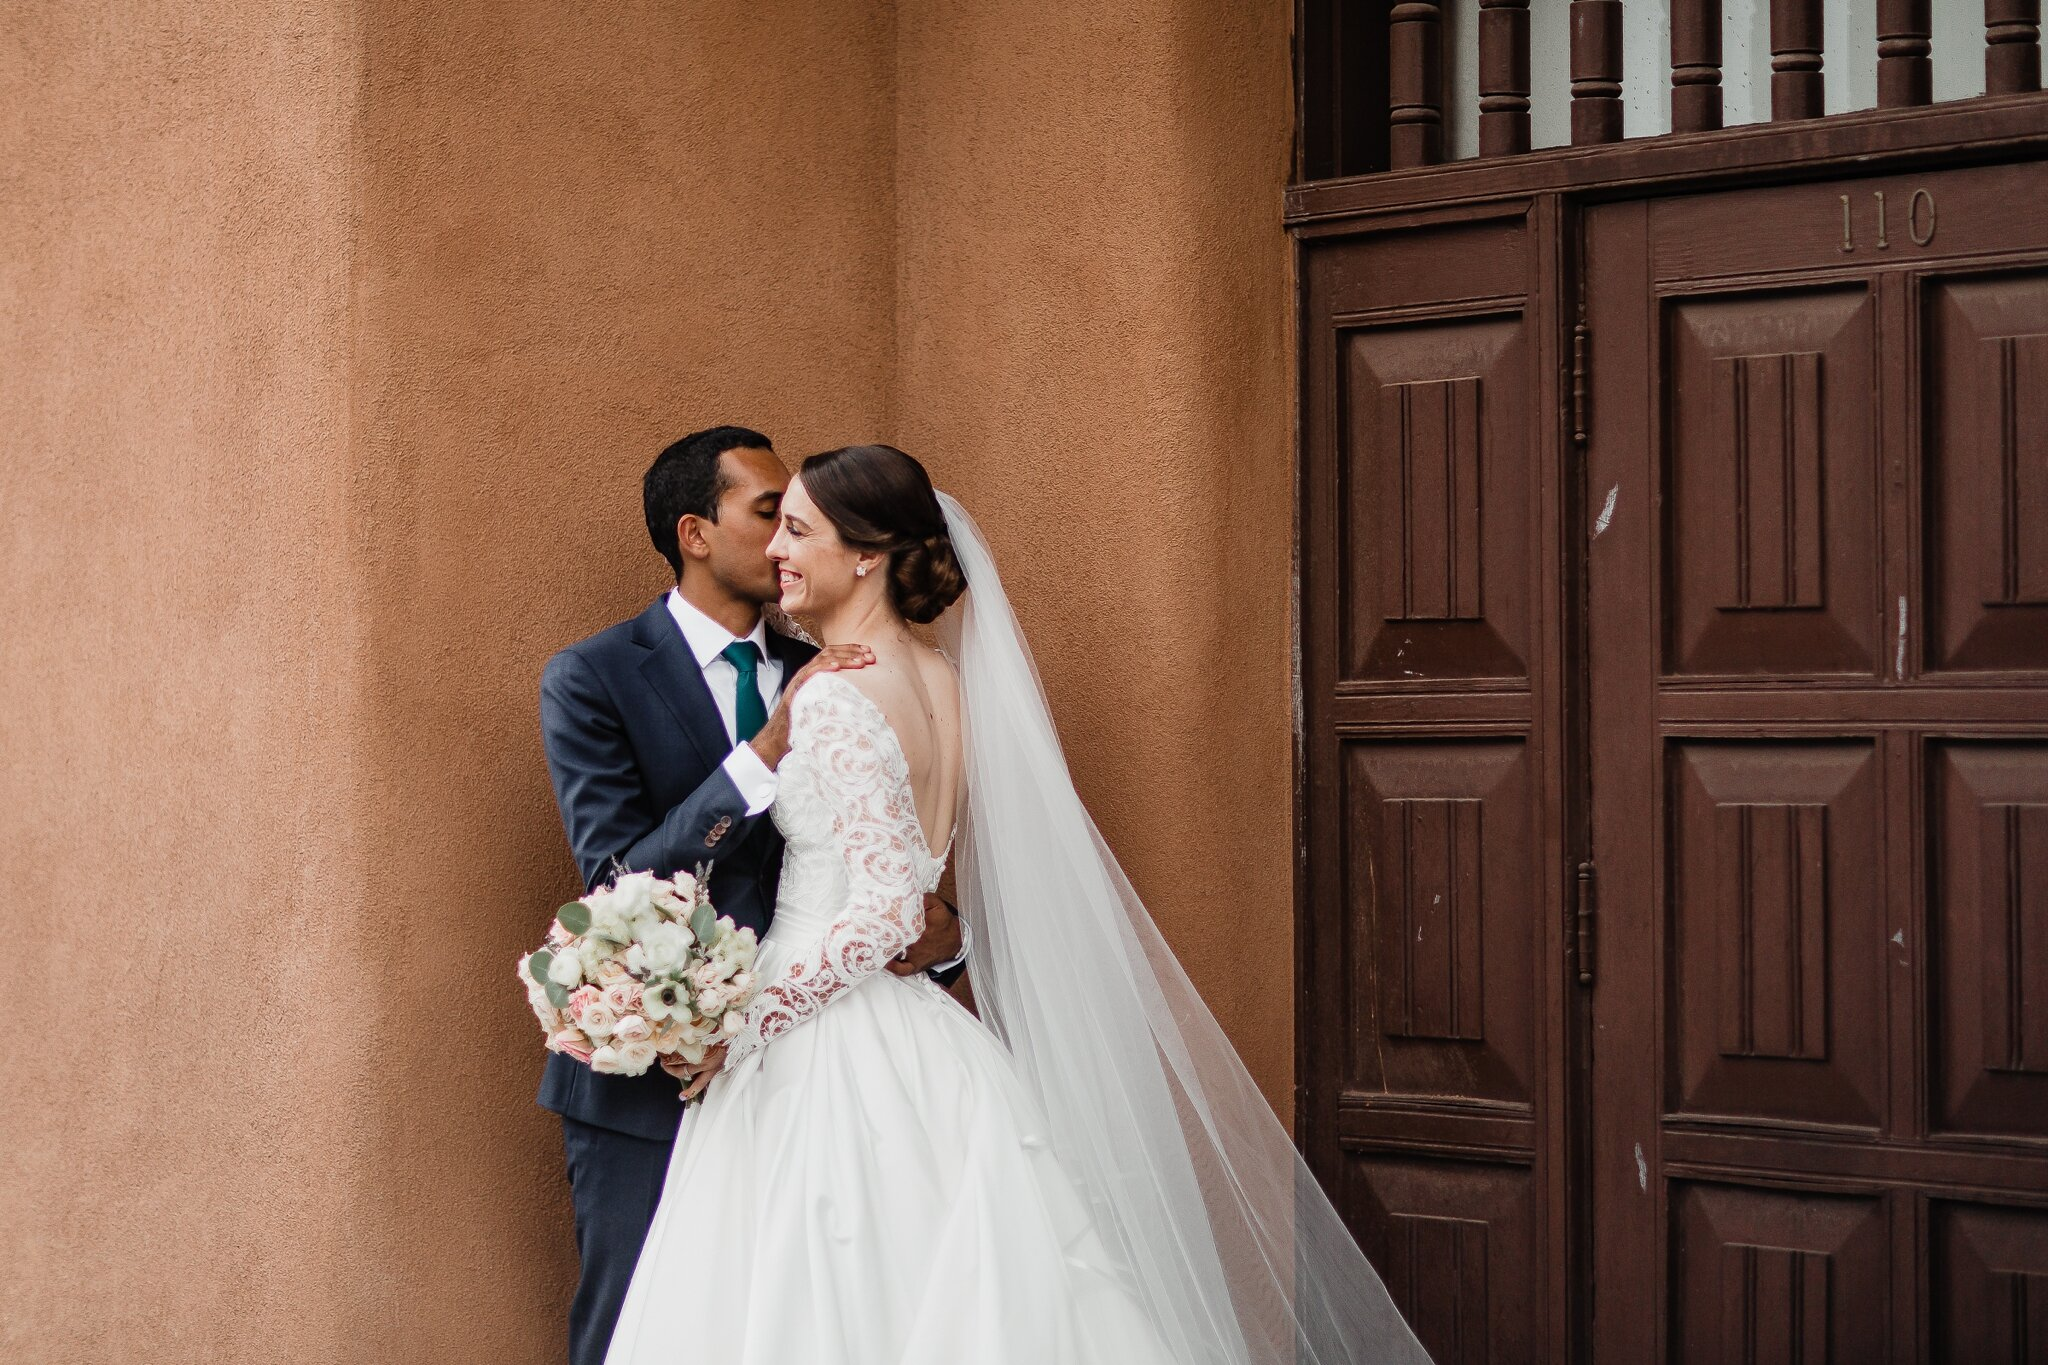 Alicia+lucia+photography+-+albuquerque+wedding+photographer+-+santa+fe+wedding+photography+-+new+mexico+wedding+photographer+-+new+mexico+wedding+-+hindu+wedding+-+catholic+wedding+-+multicultural+wedding+-+santa+fe+wedding_0080.jpg